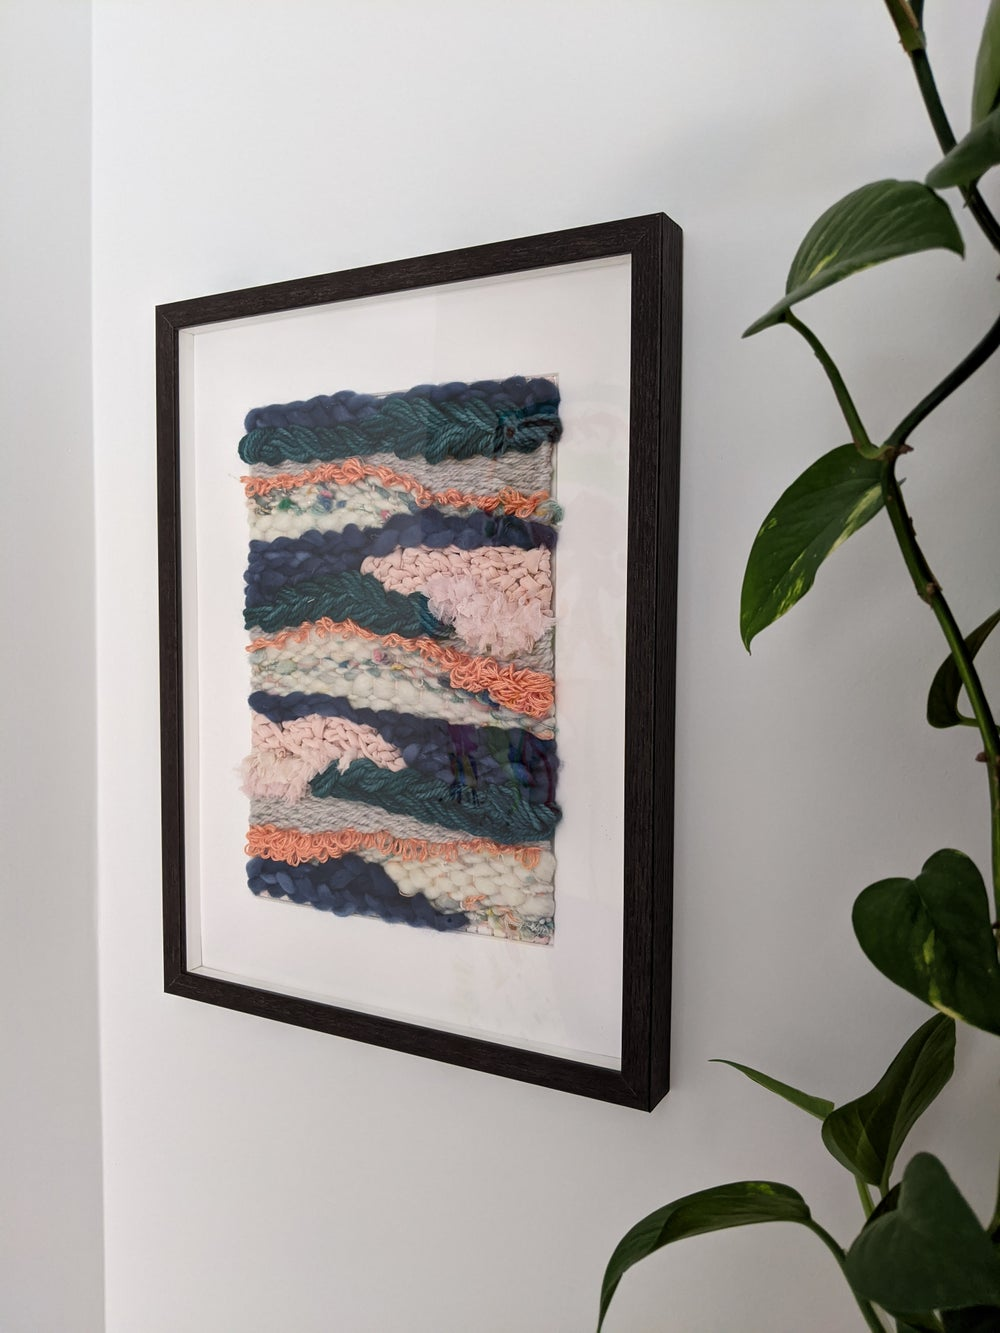 Image of Framed Wall Hanging - TEMPEST